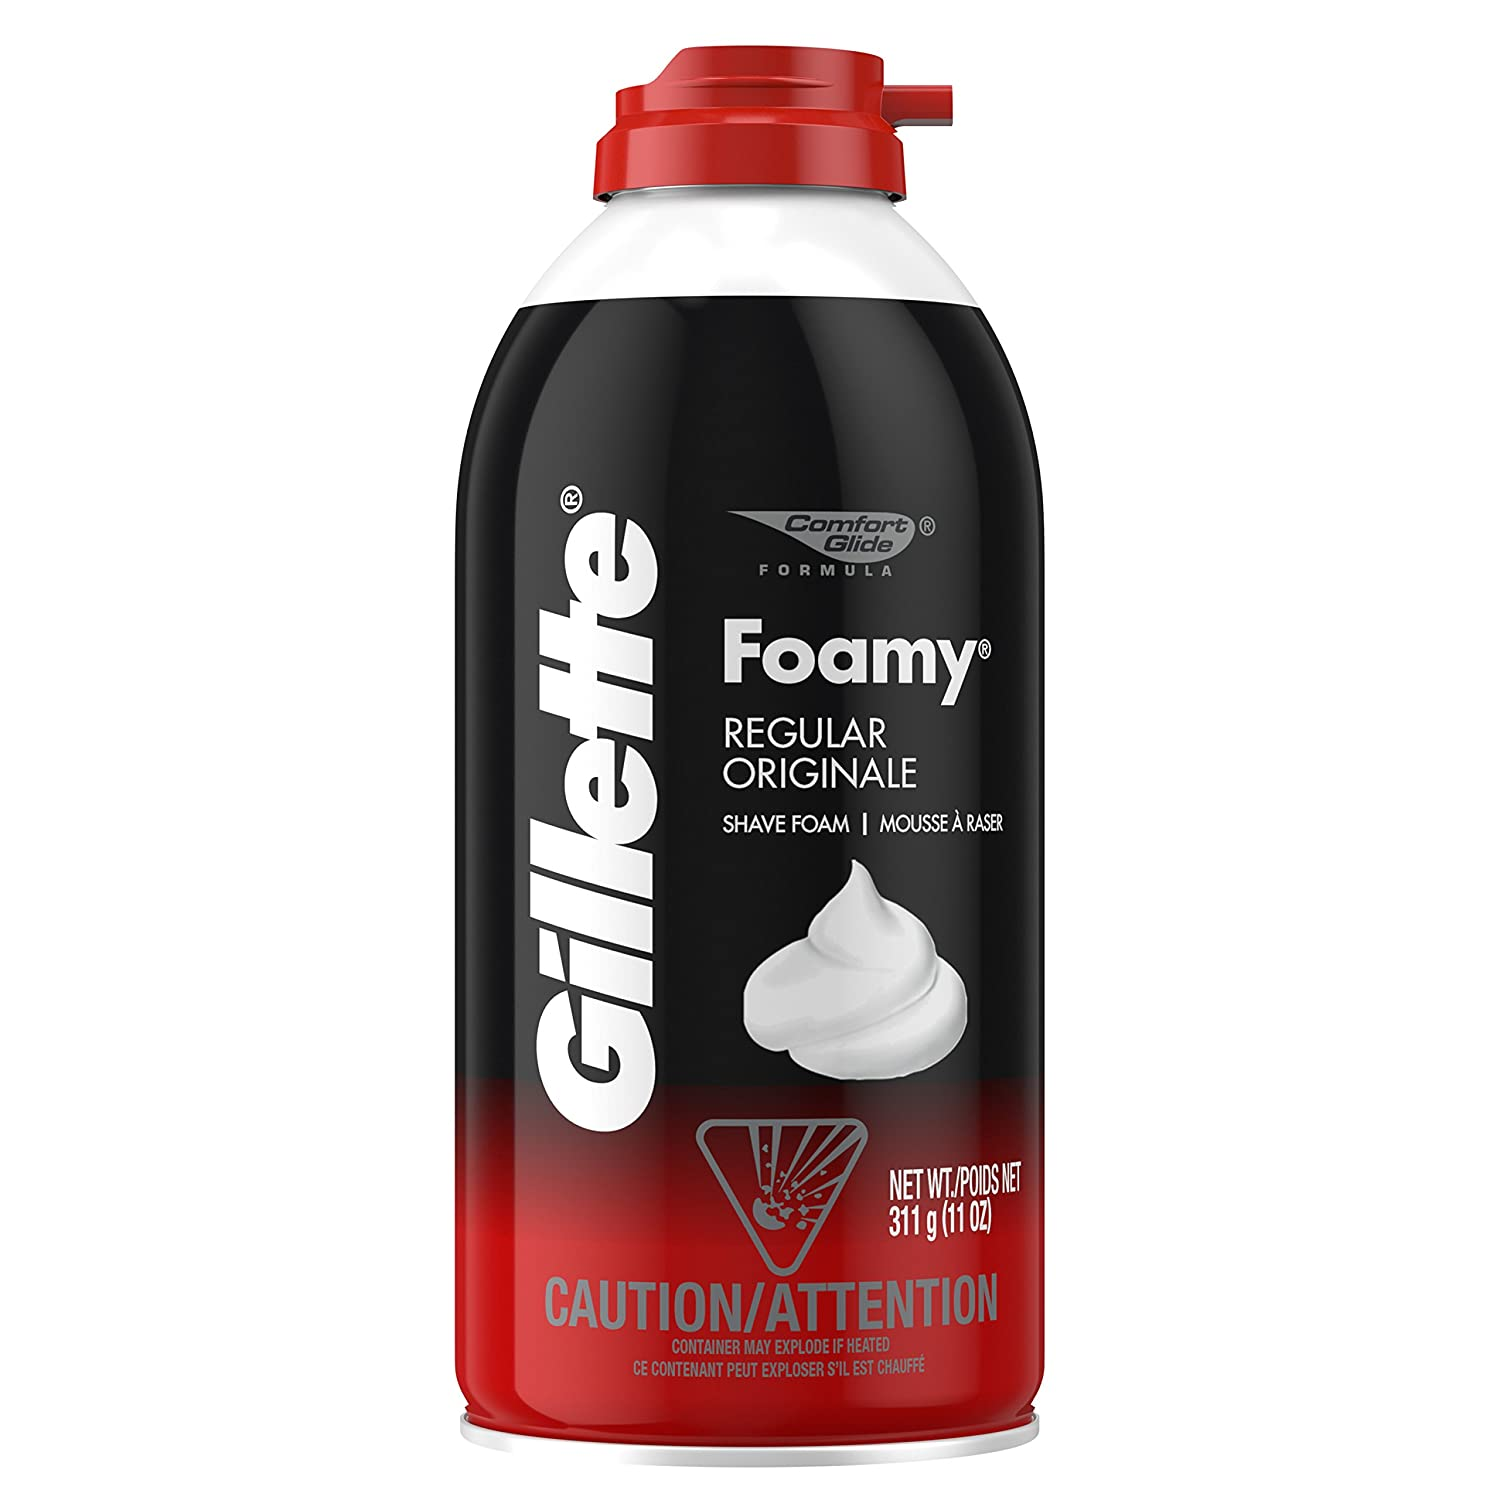 Gillette Foamy Shave Foam Original 11 Ounce (325ml) (2 Pack)